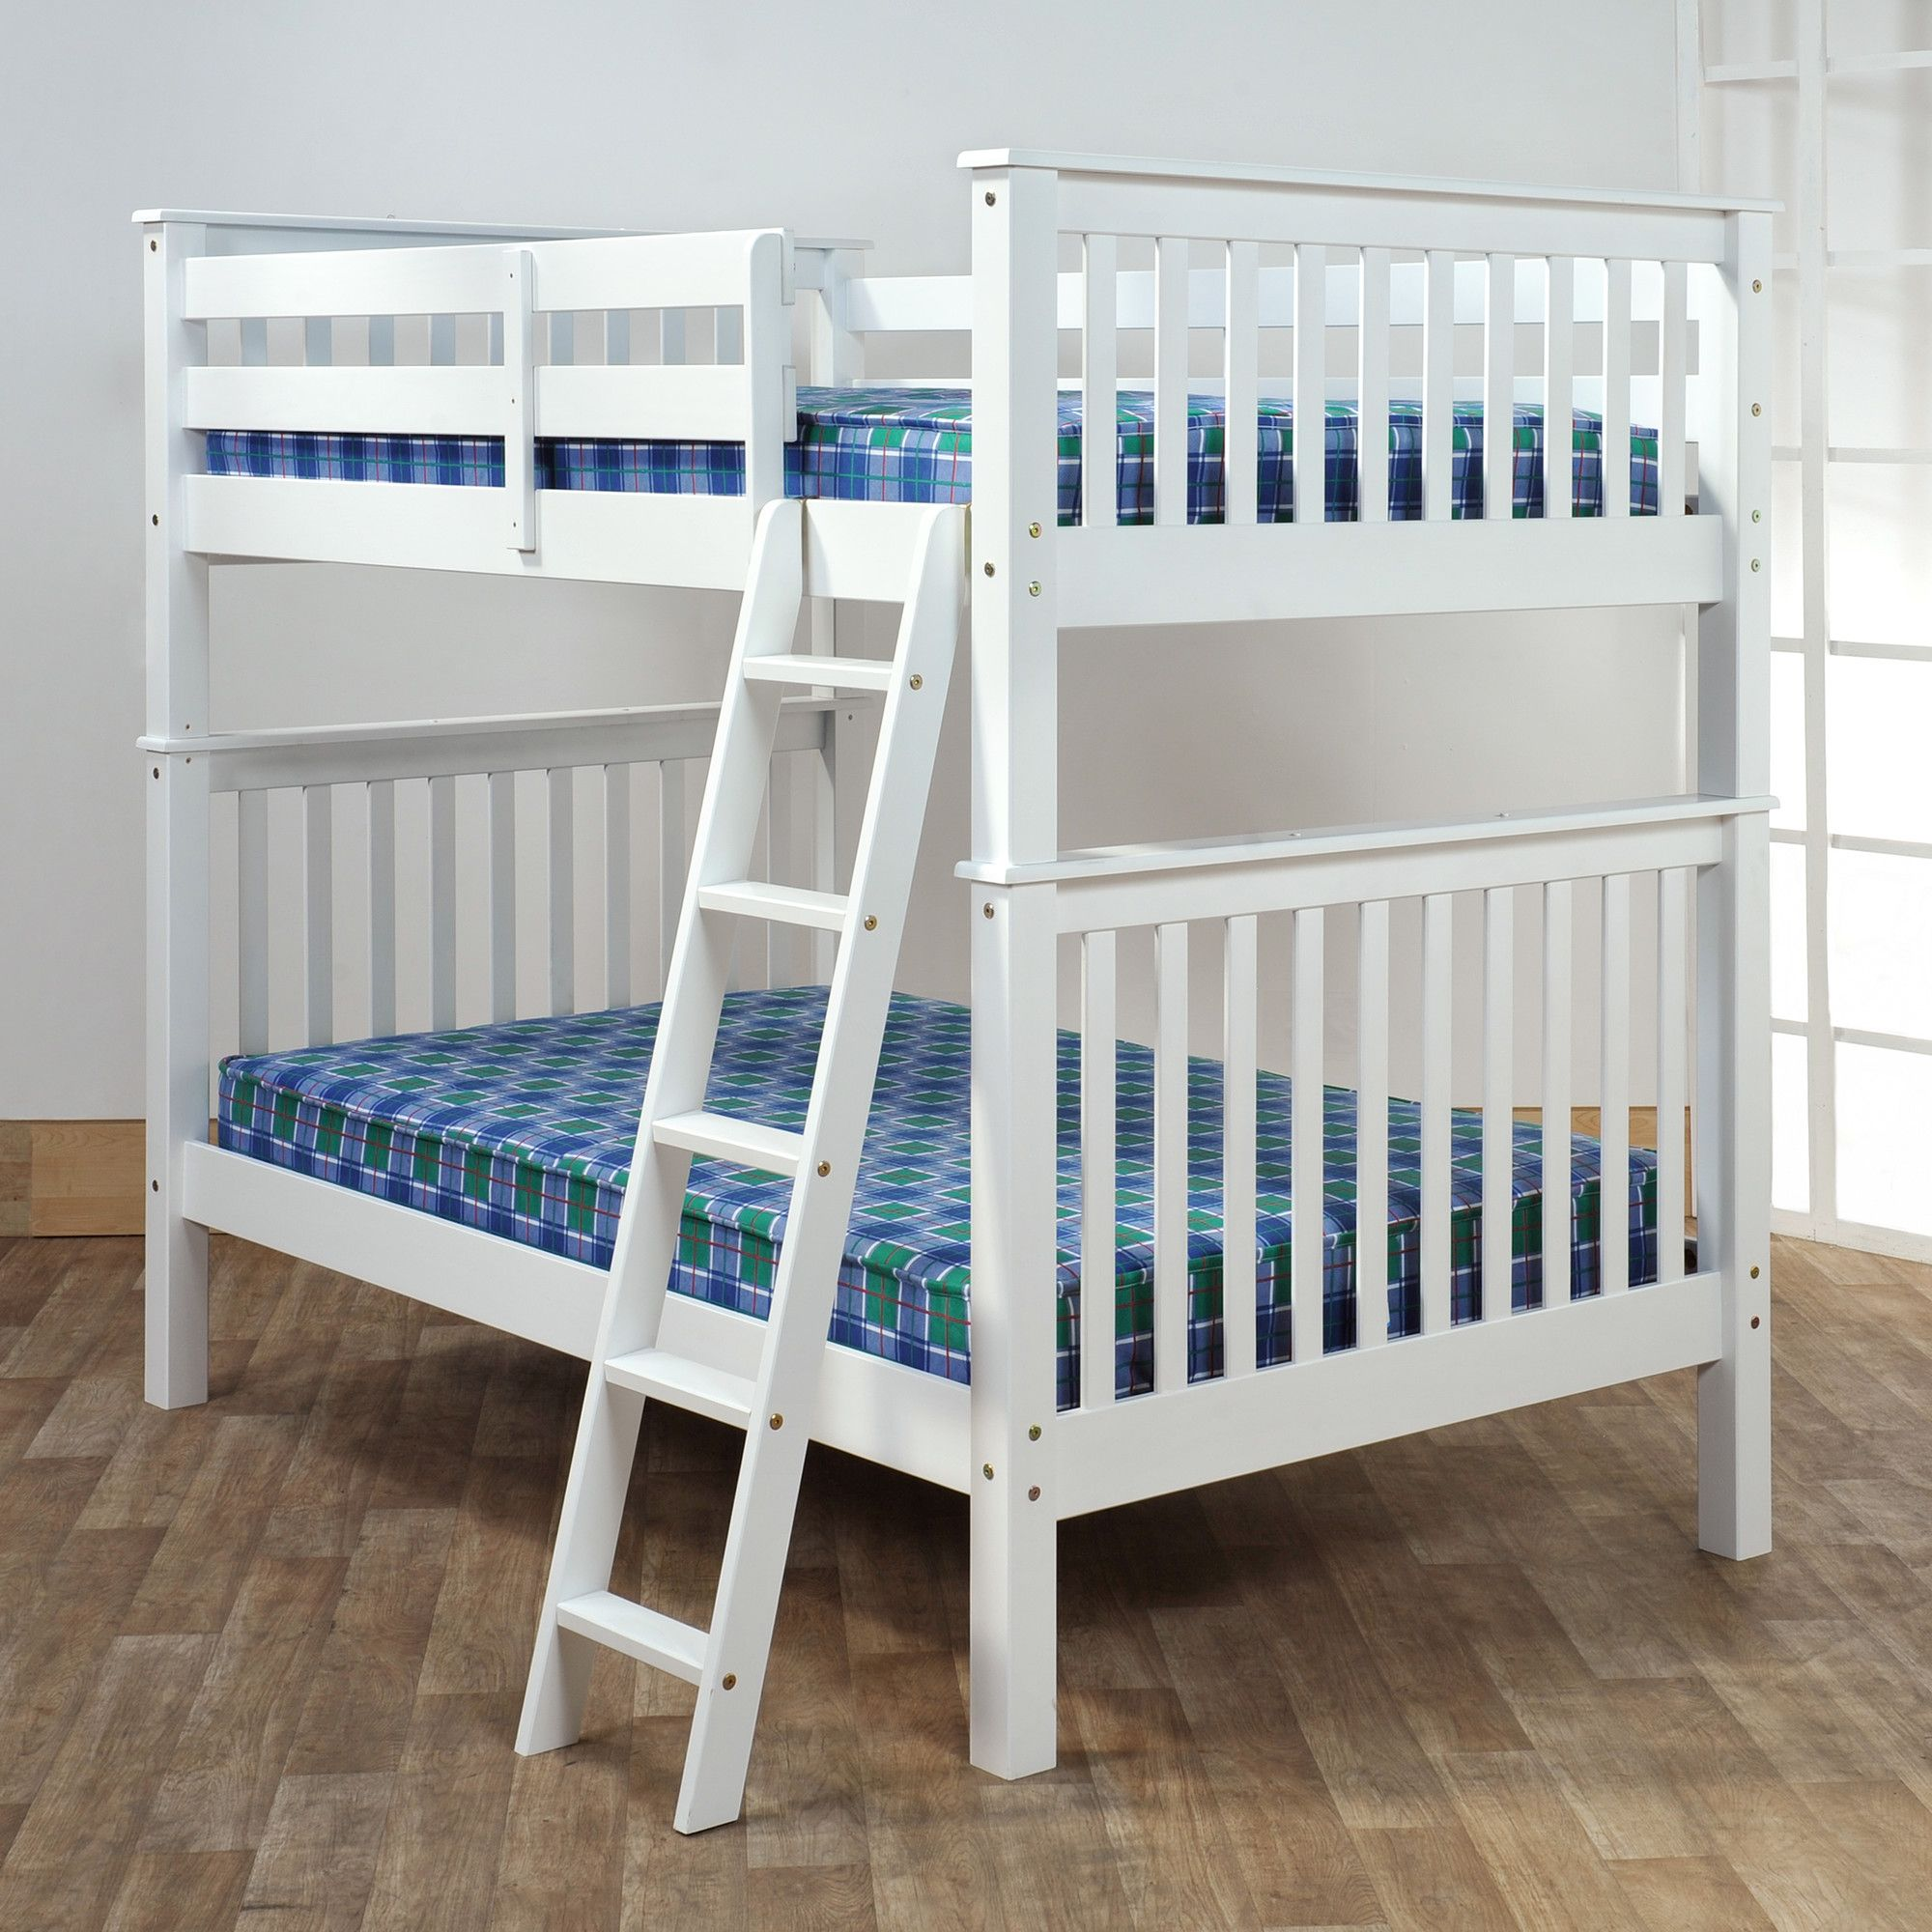 Amani Malvern Bunk Bed at Tescos Direct